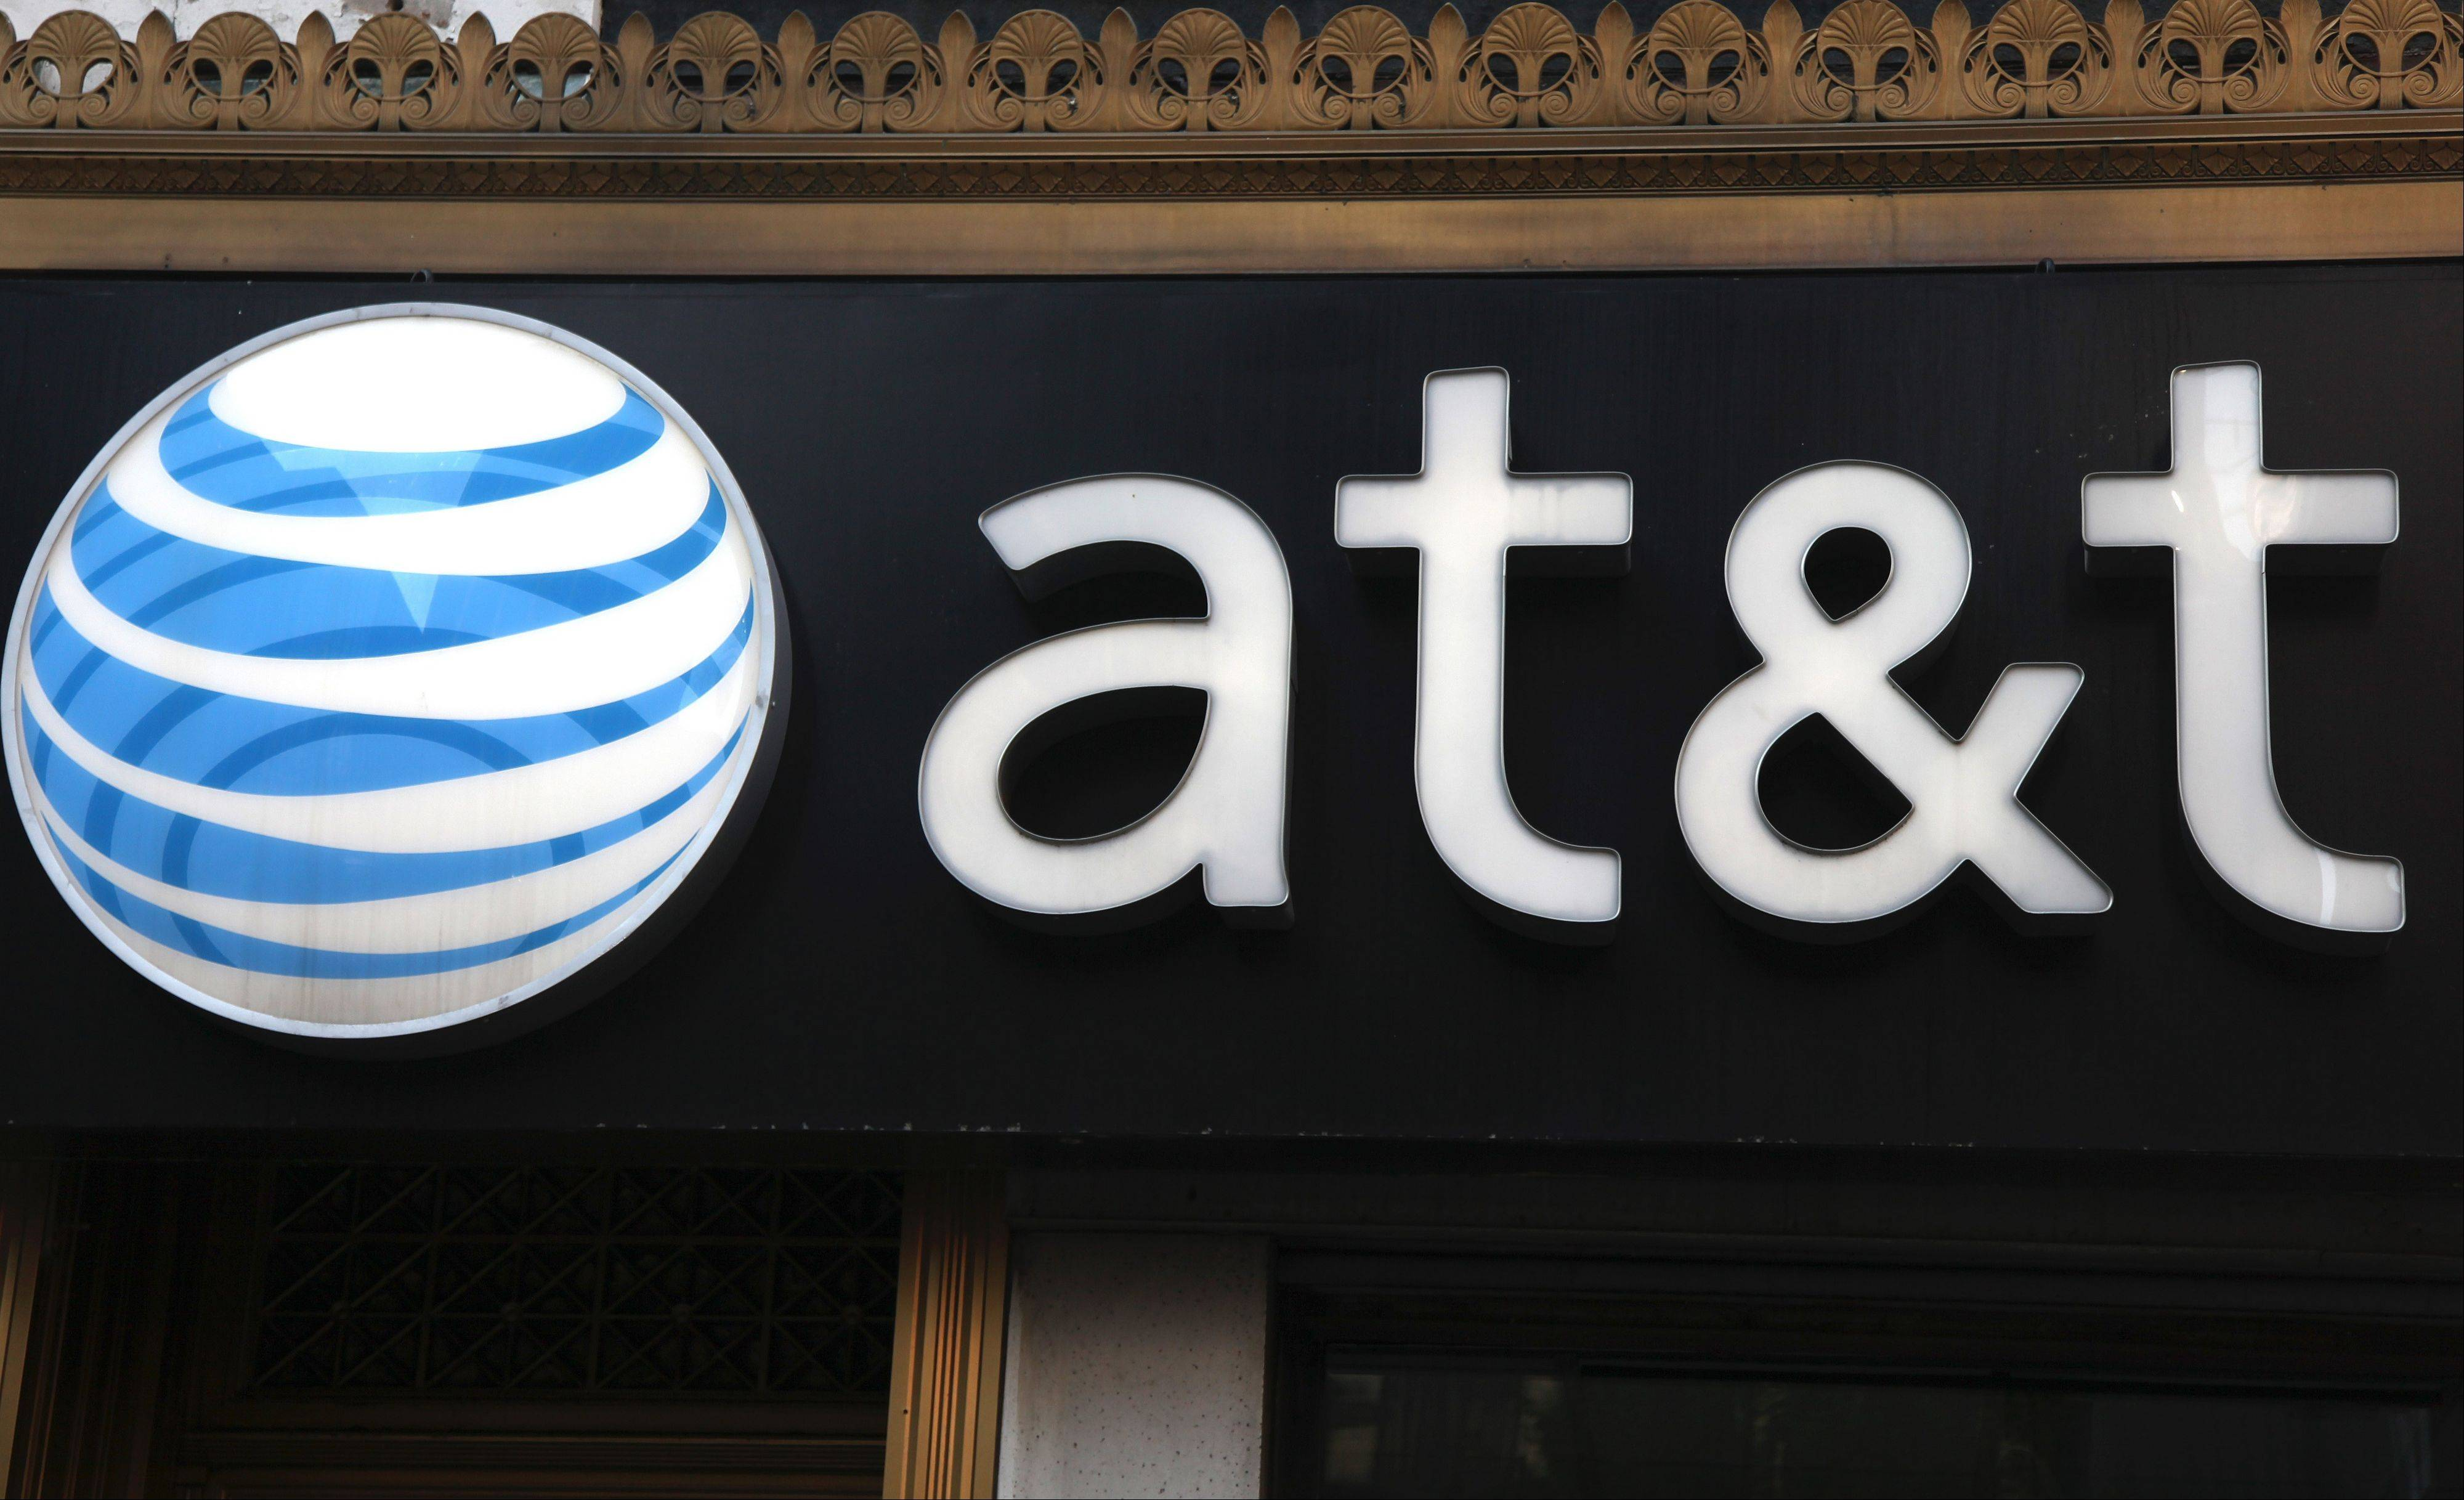 Following in Verizon's footsteps, AT&T said Wednesday it will introduce wireless plans that let subscribers connect up to ten devices.